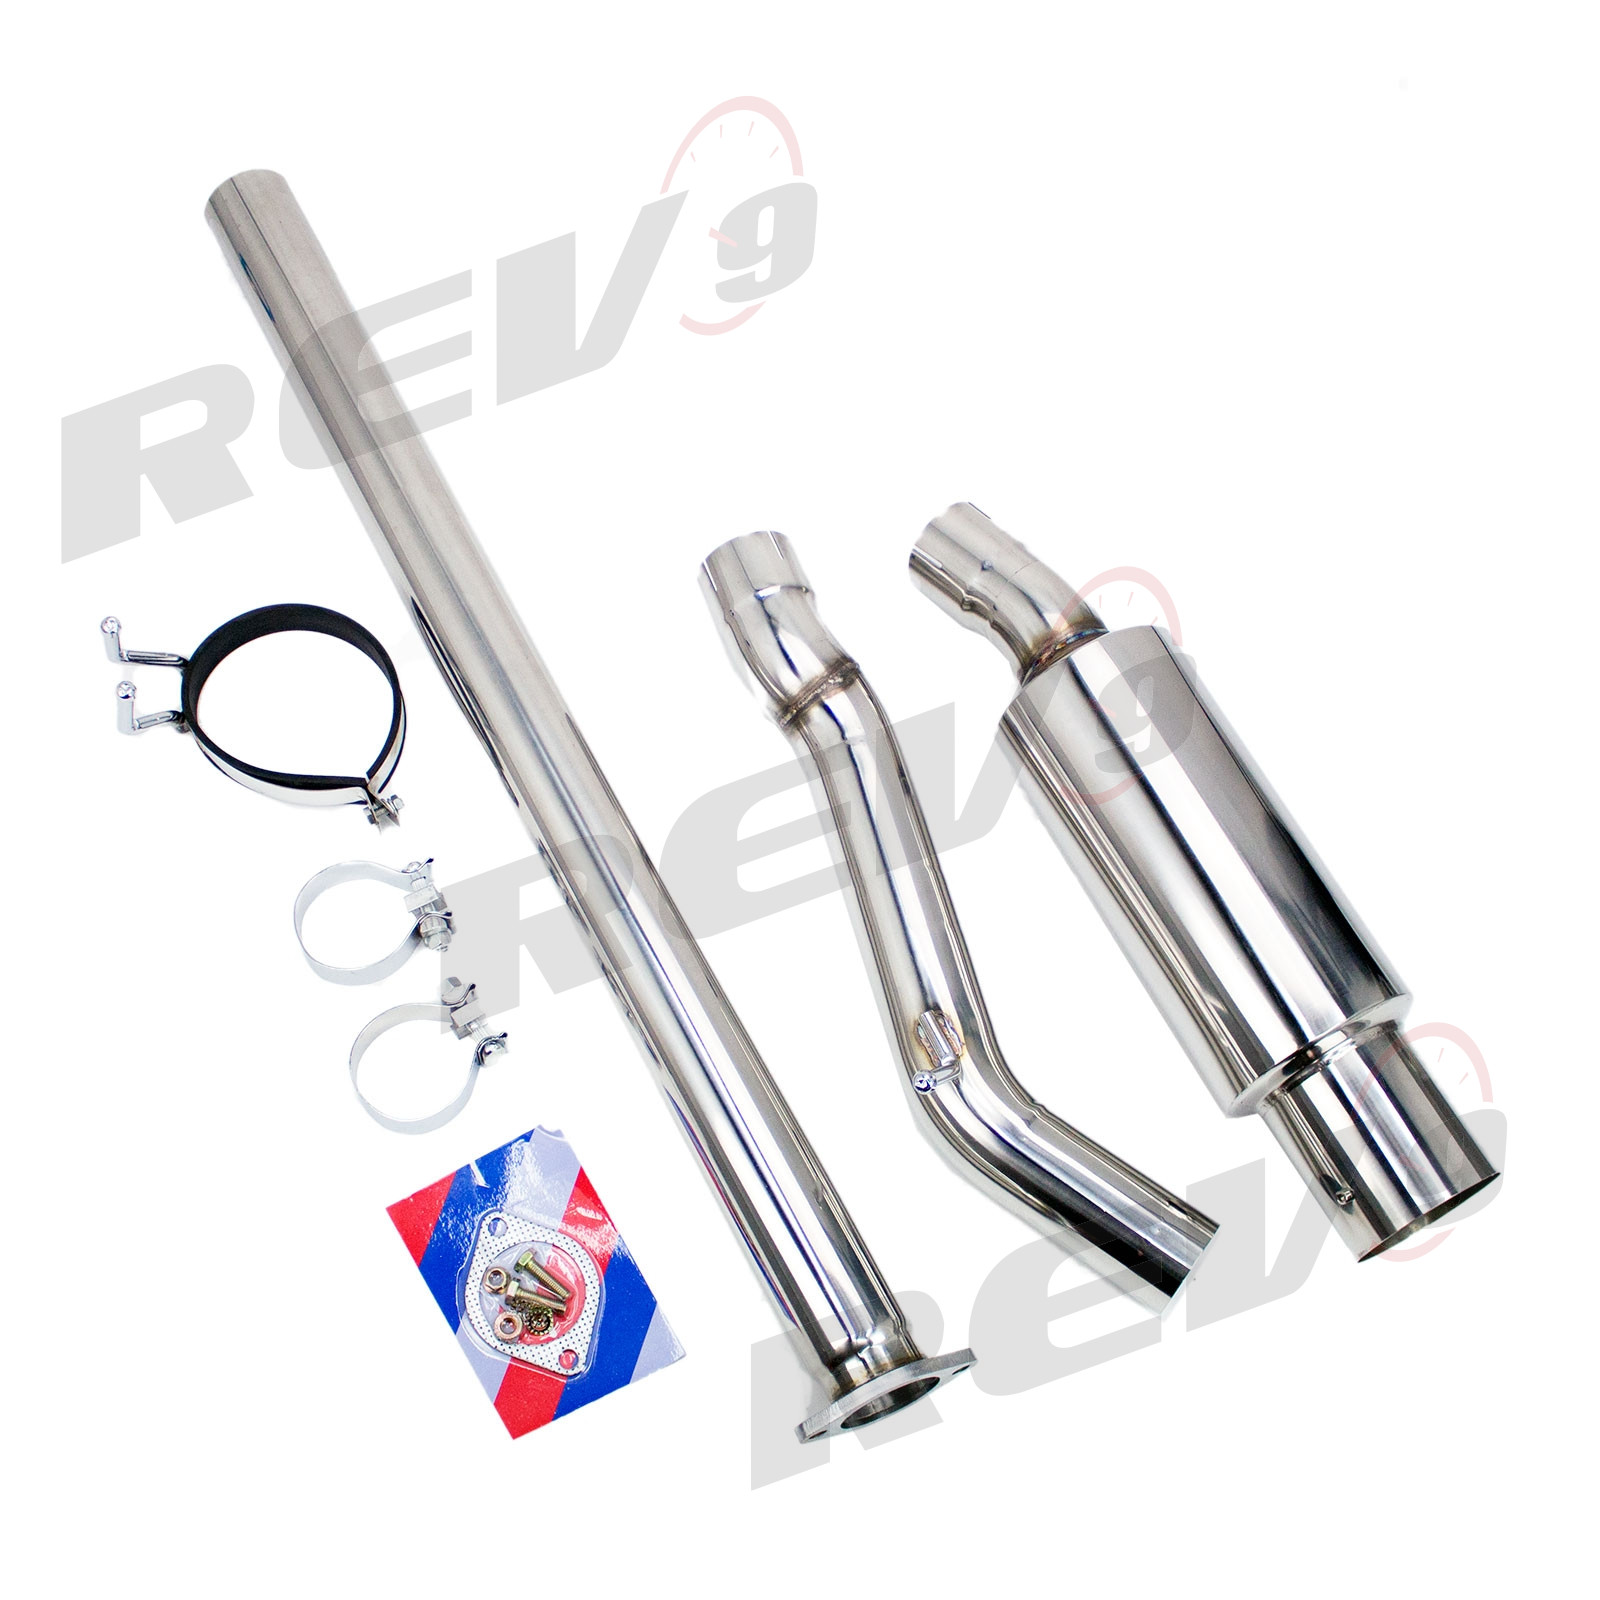 single exit cat back exhaust kit stainless steel 3 inch pipe mitsubishi evolution x 08 15